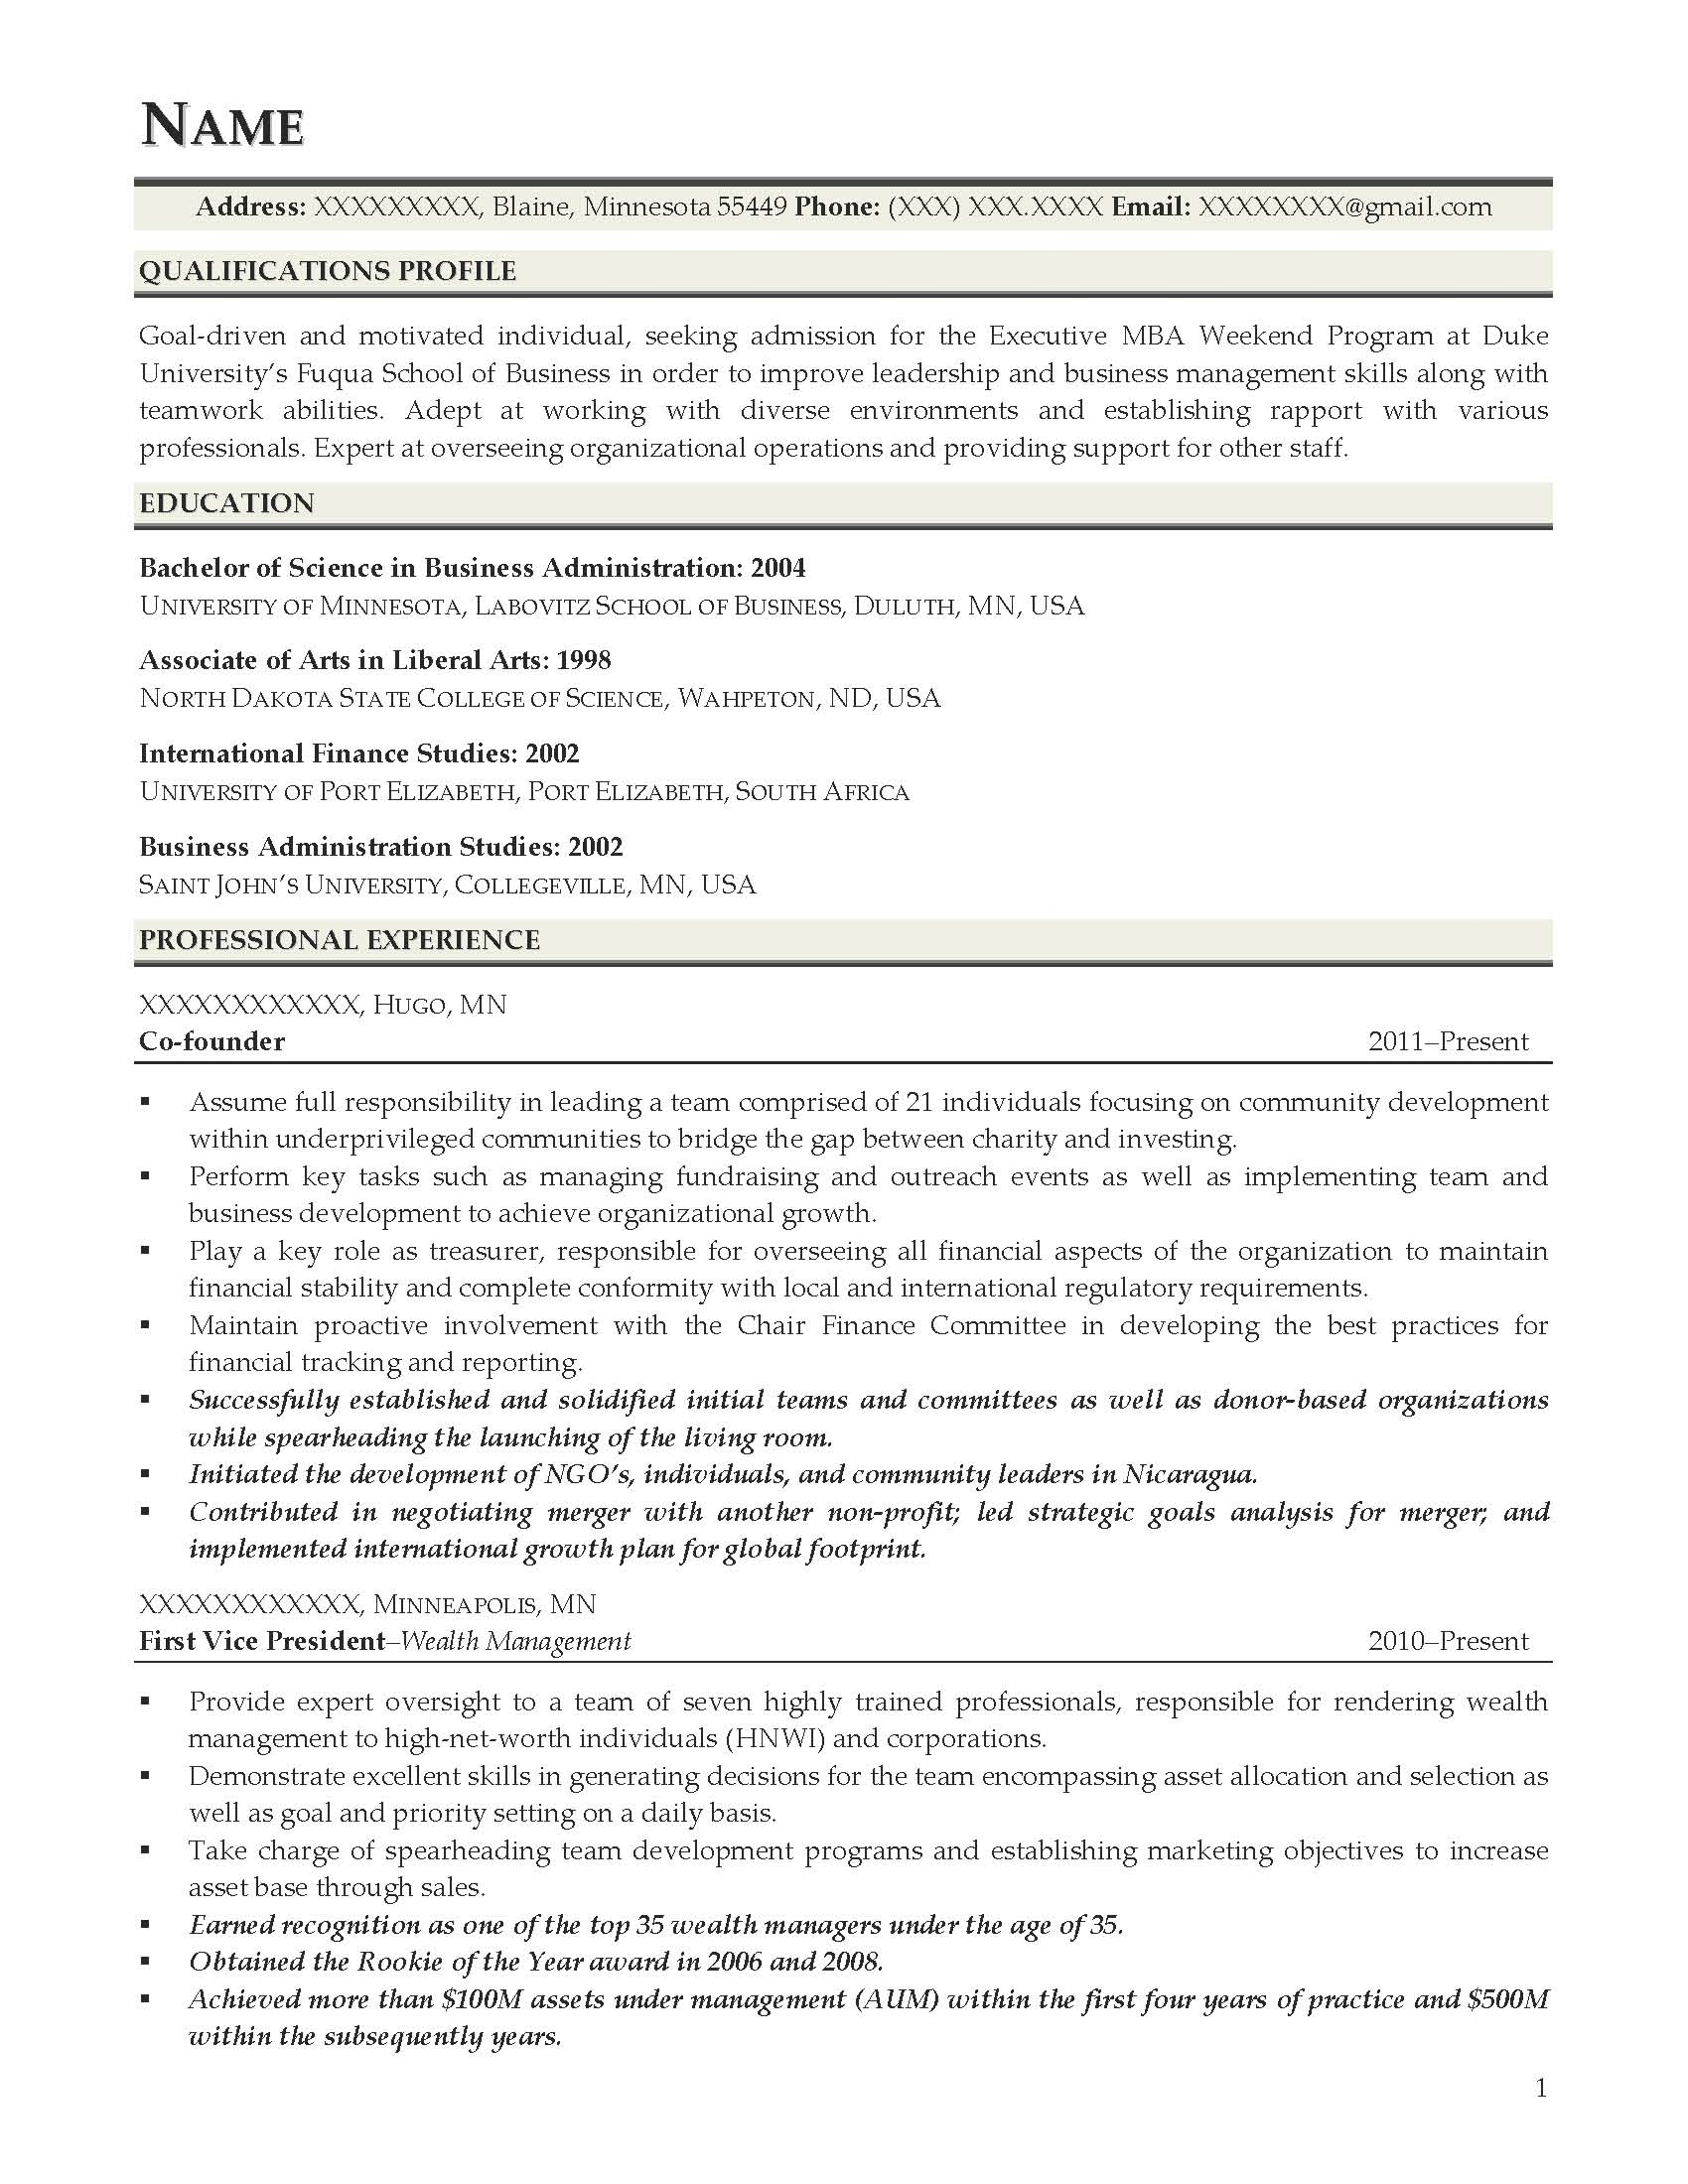 executive mba weekend program resume sample after 1 - Mba Application Resume Sample